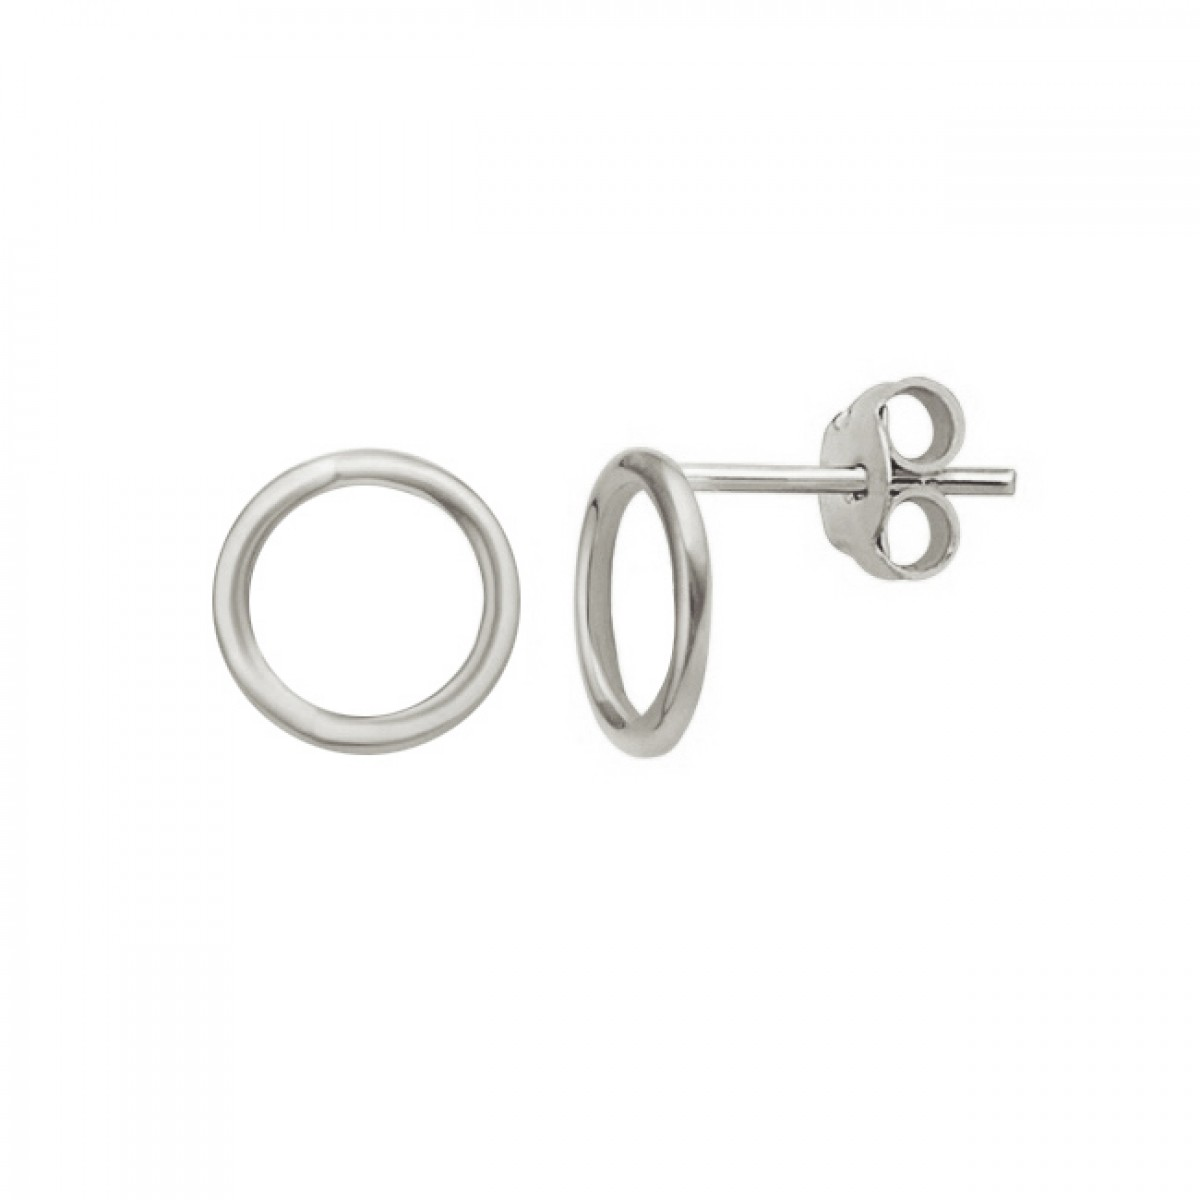 Anoa Ohrstecker Emilia 925 Sterling Silber